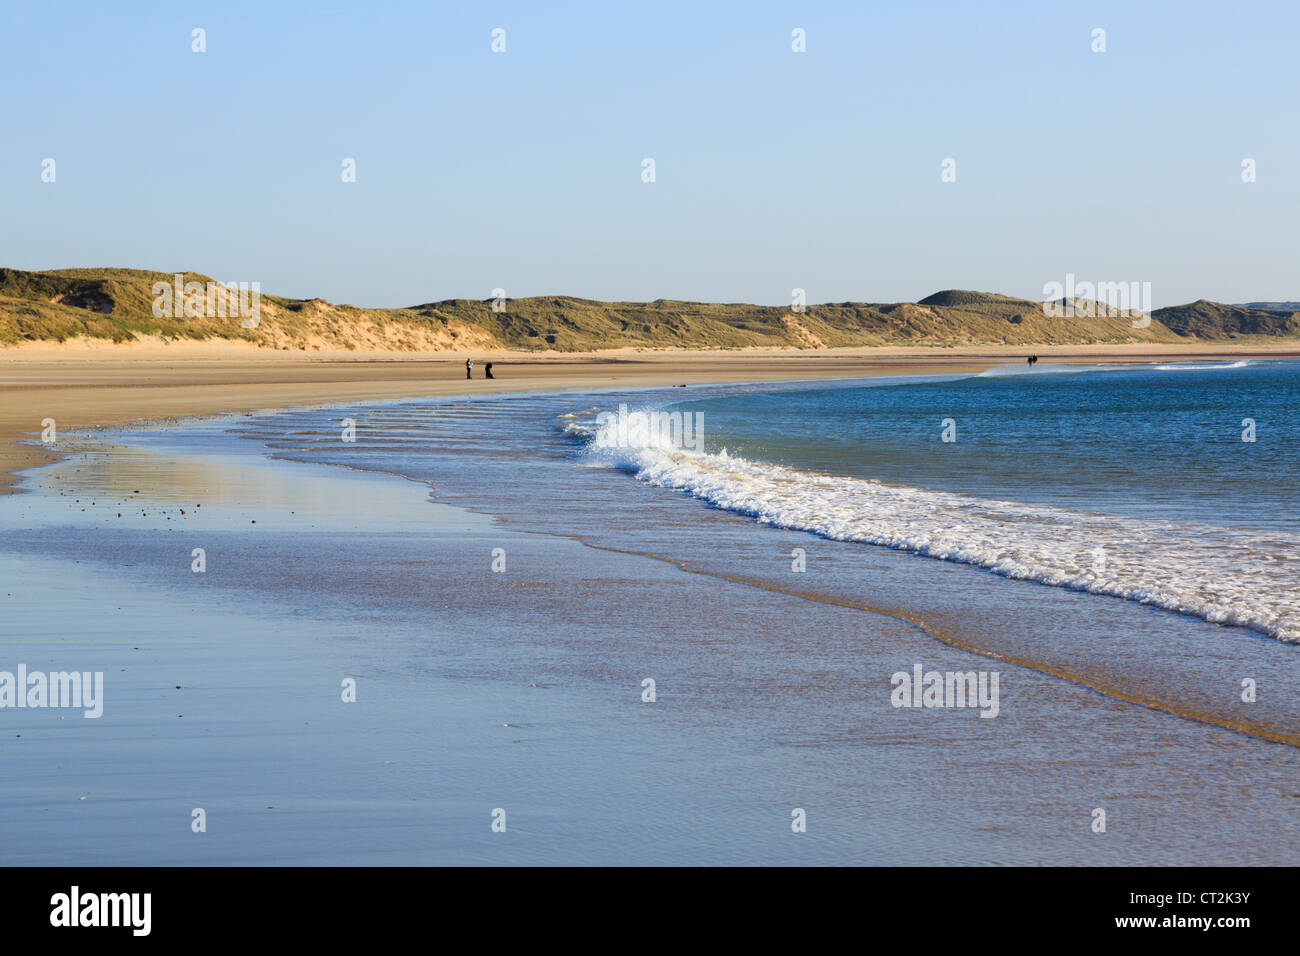 View to sand dunes along wet sandy beach in Dunnet Bay with low receding evening tide at Dunnet Caithness Scotland - Stock Image